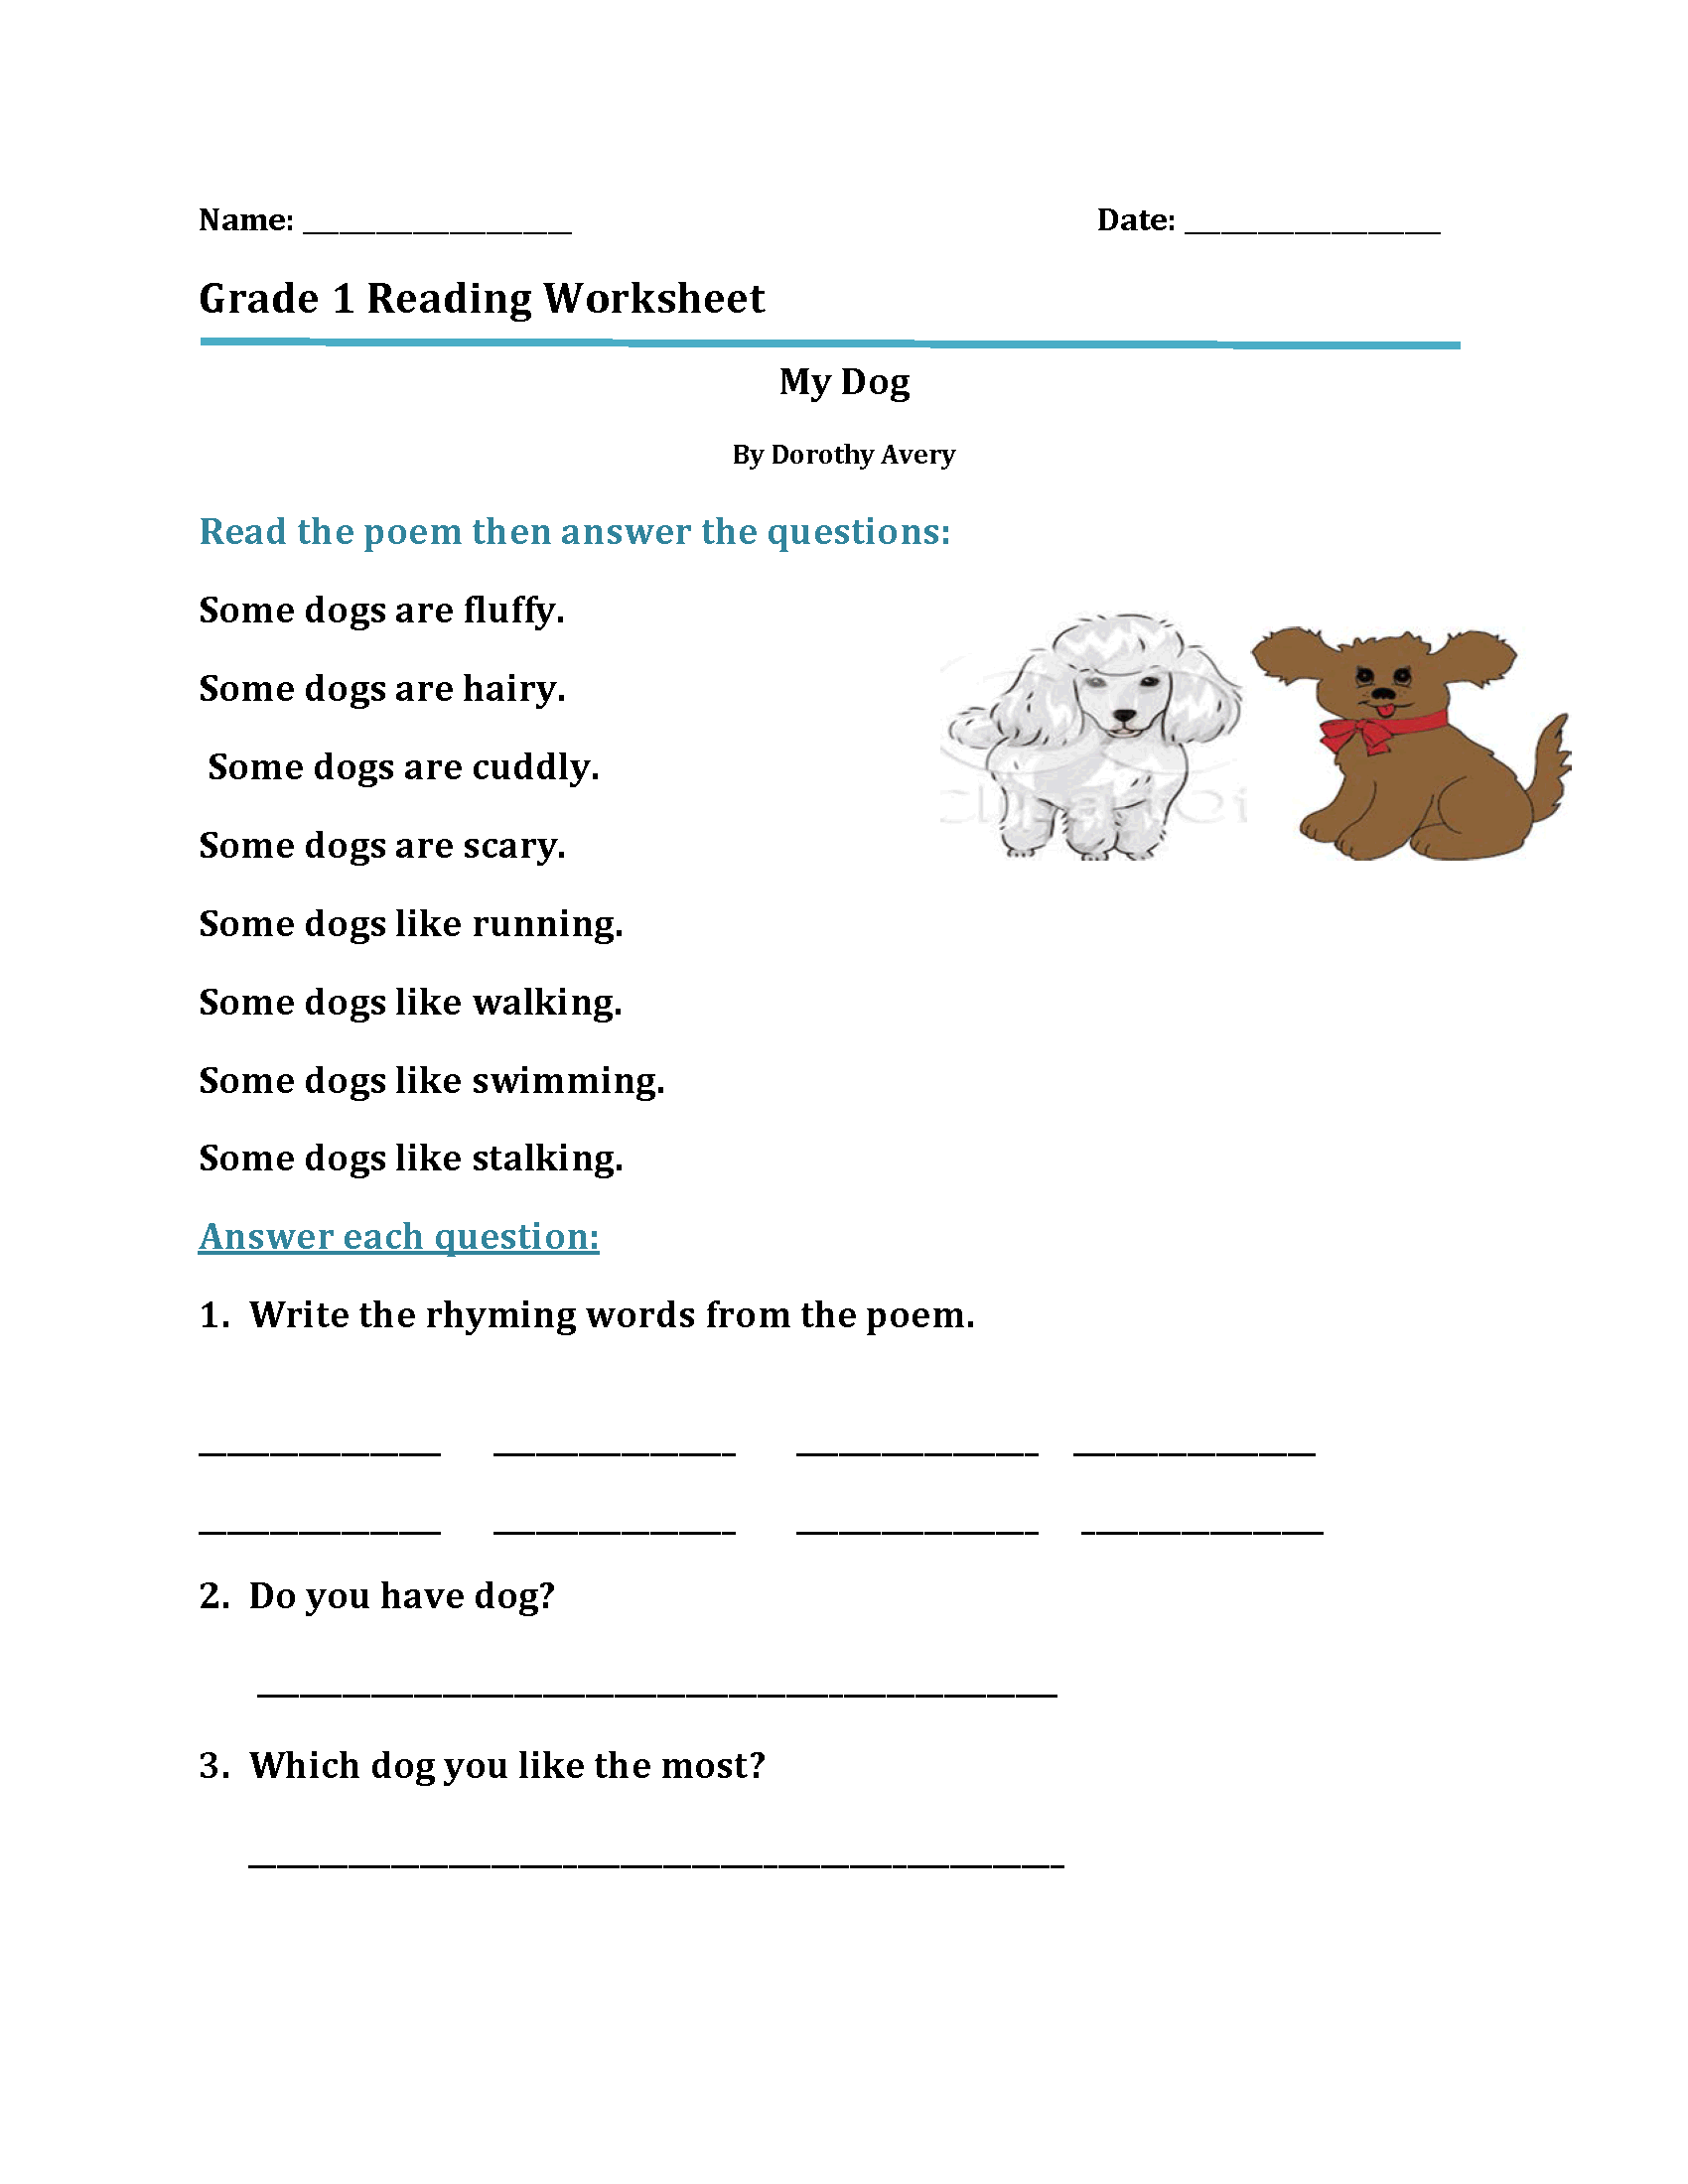 Printable Reading Worksheets for Grade 1   K5 Worksheets   Reading  worksheets [ 2200 x 1700 Pixel ]